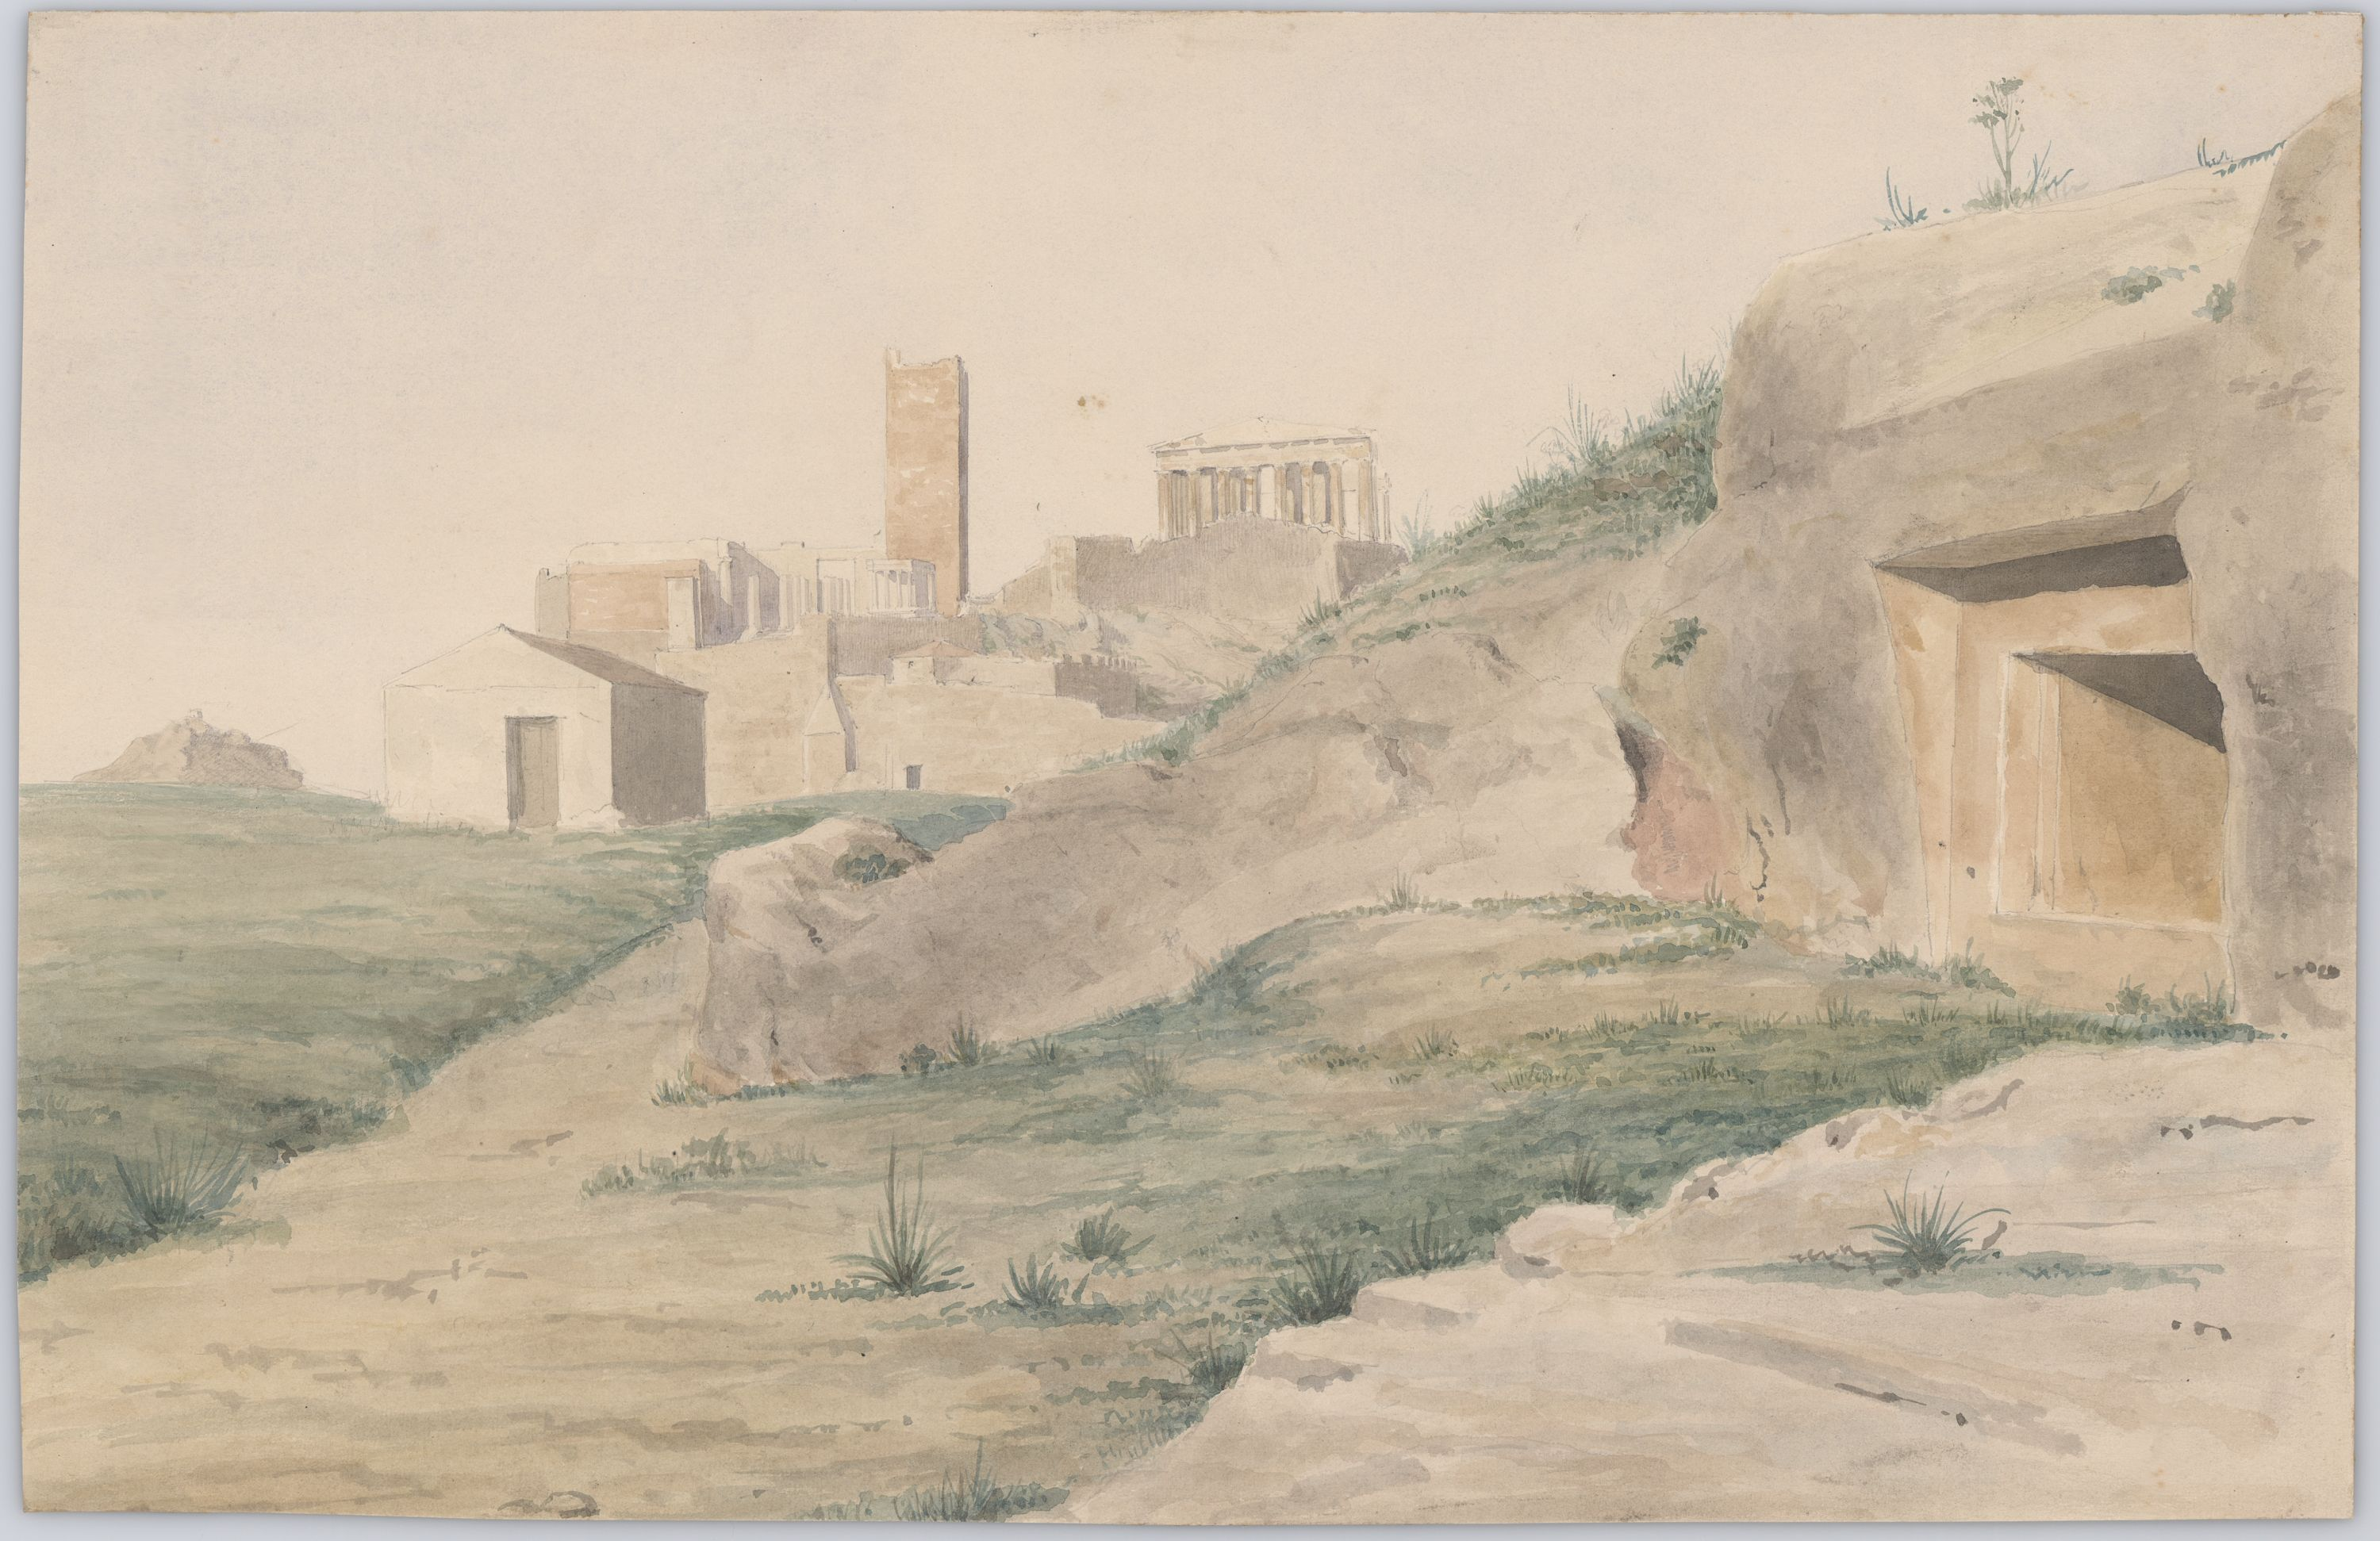 "The so-called ""Tombs of Kimon"" and the rock of the Acropolis, and its monuments; Loumbardiaris, plain and unadorned (Royal Danish Library - Danish National Art Library)."